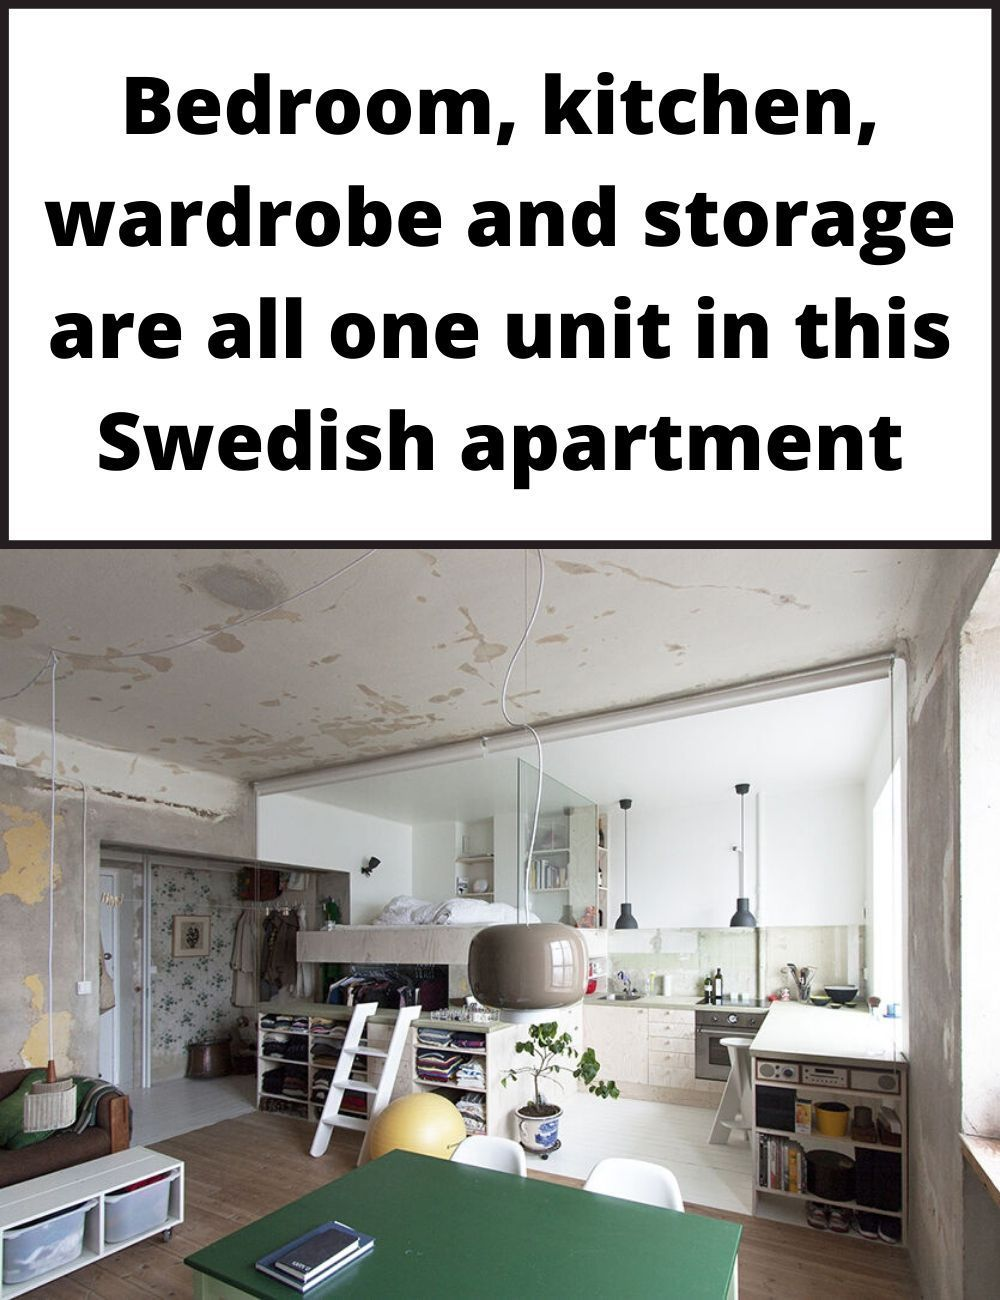 Bedroom Kitchen Wardrobe And Storage Are All One Unit In This Swedish Apartment In 2020 Apartment Kitchen Wardrobe Small Spaces